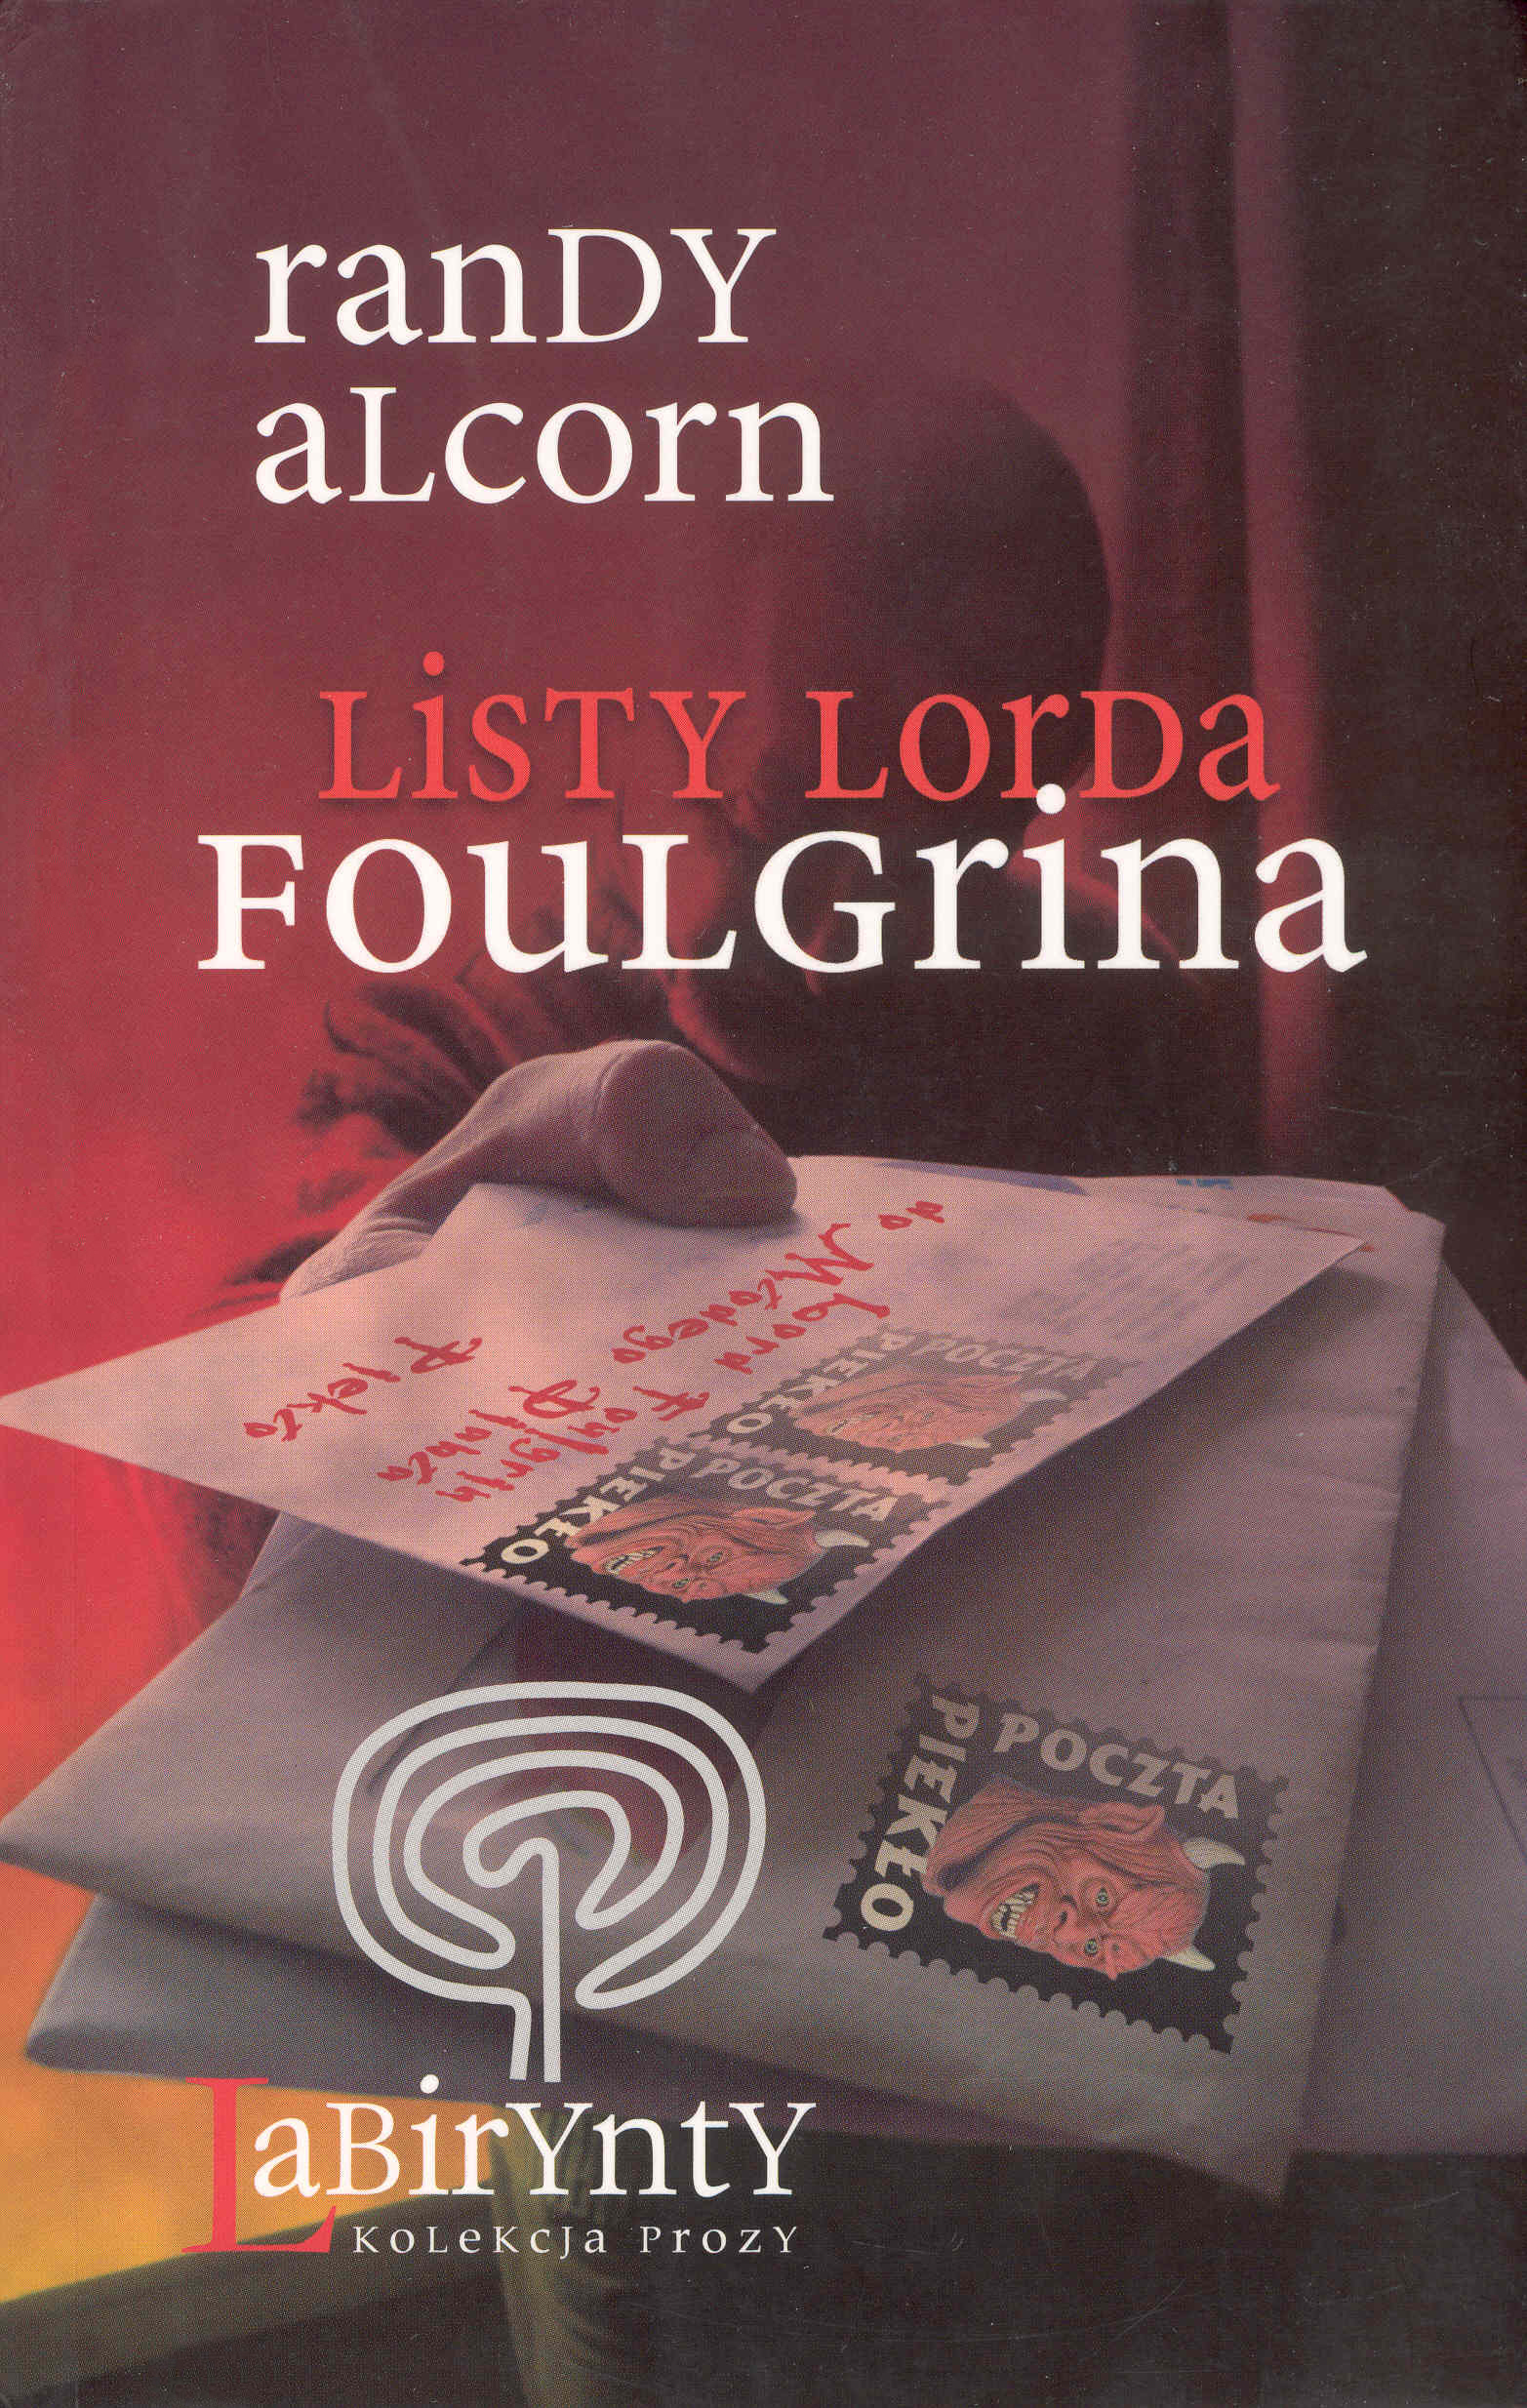 lord-foulgrins-letters-polish.jpg